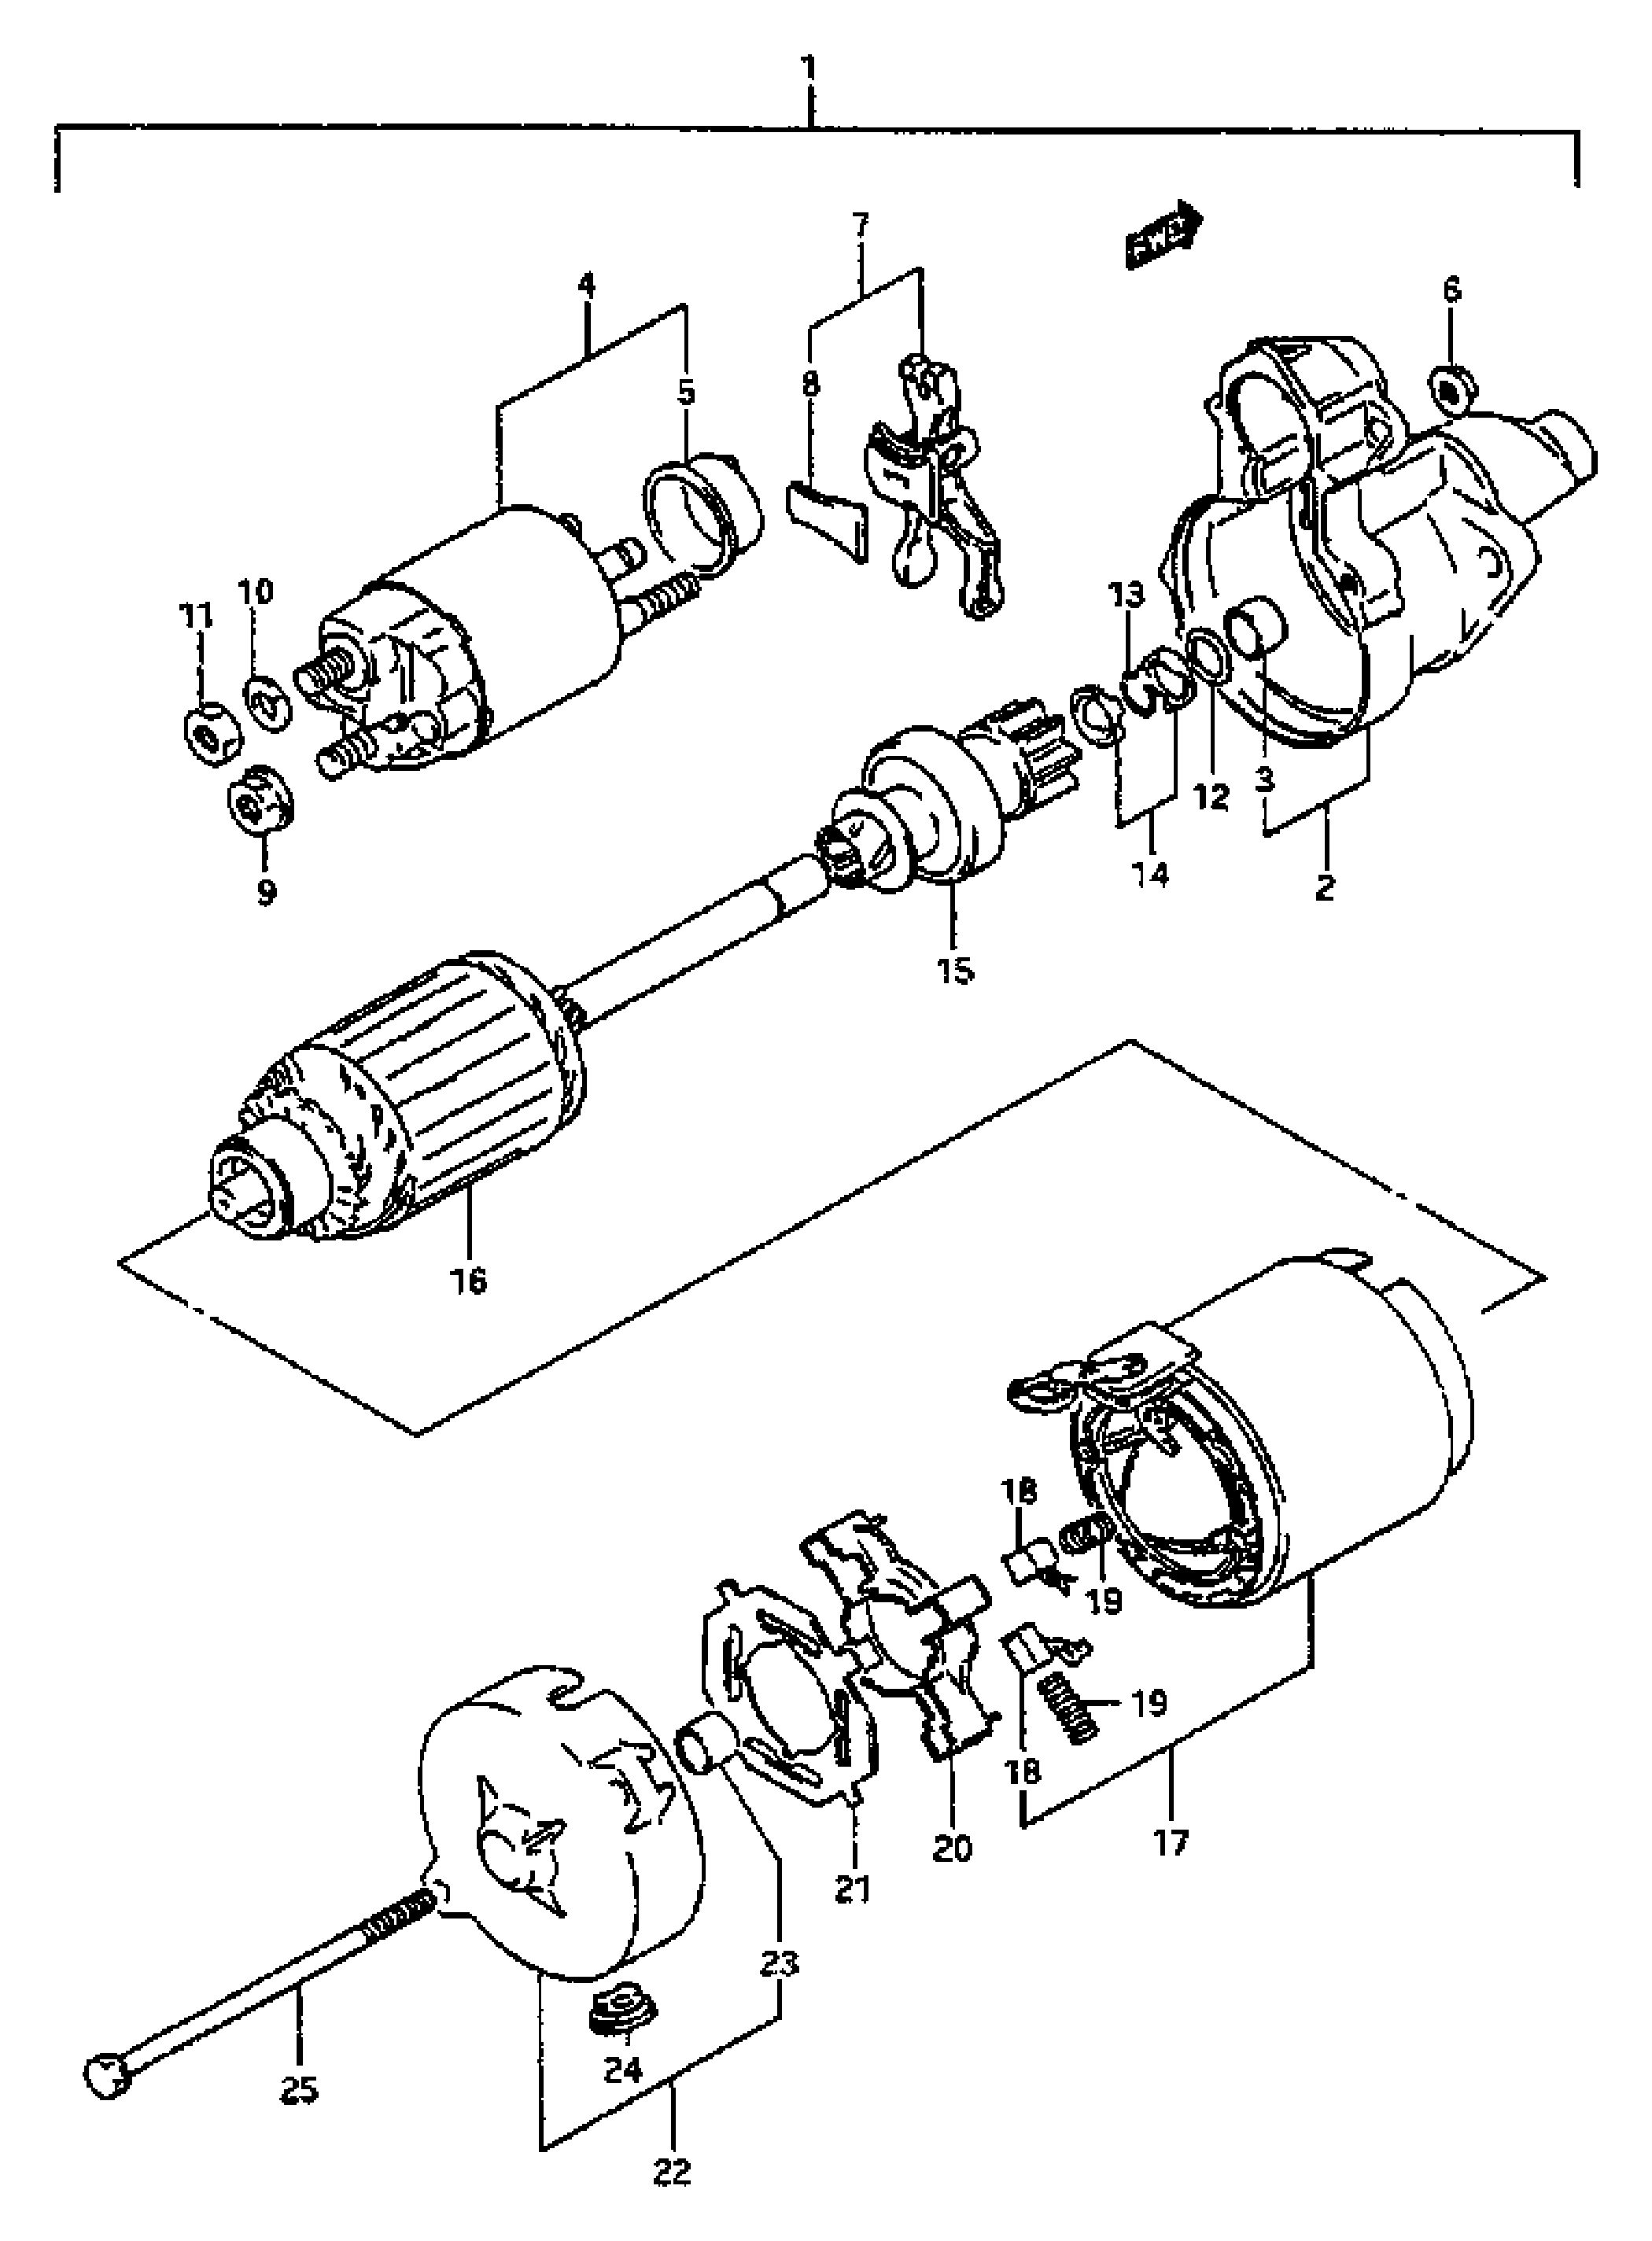 [WRG-7170] Suzuki Carry Engine Diagram